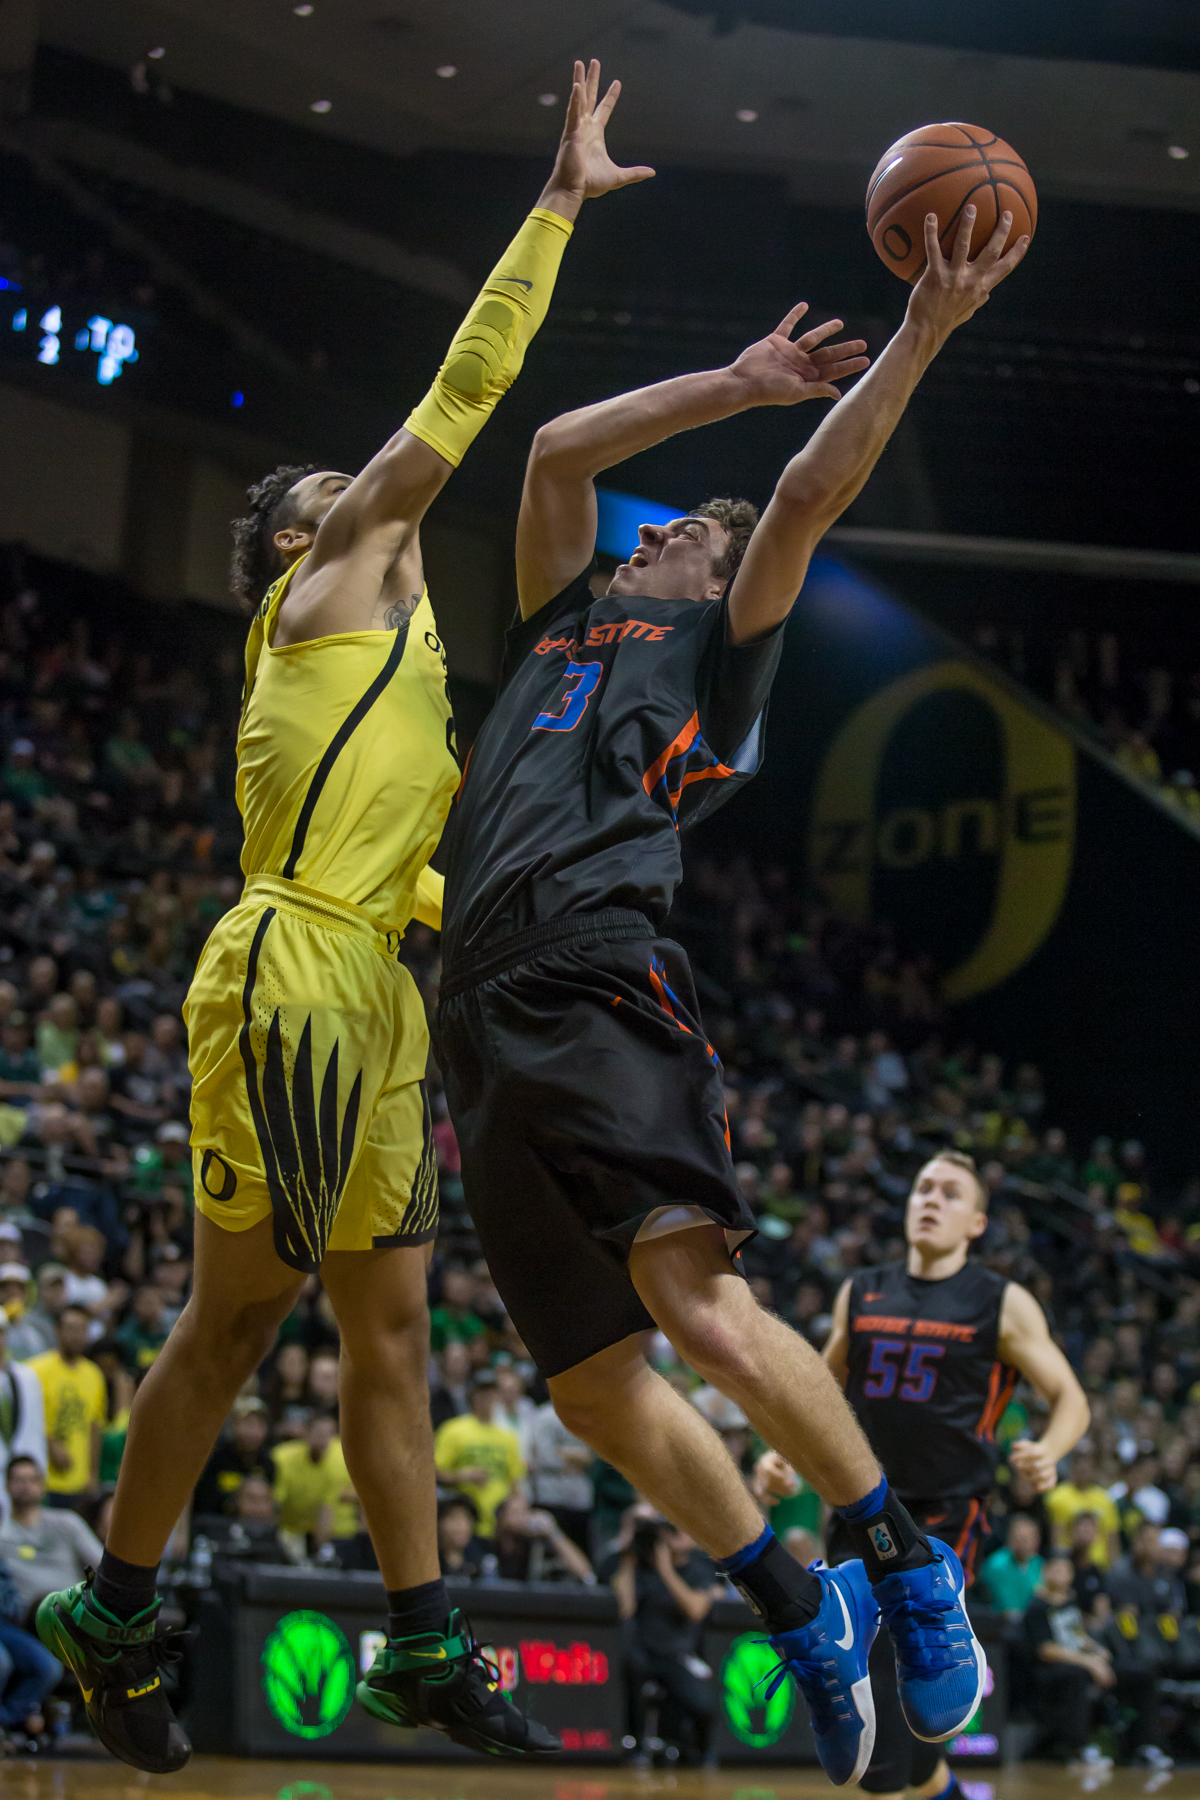 Boise State guard Justinian Jessup (#3) tries to shoot a ball over Oregon forward Dillon Brooks (#24). After trailing for most of the game, the Oregon Ducks defeated the Boise State Broncos 68-63. Photo by Dillon Vibes